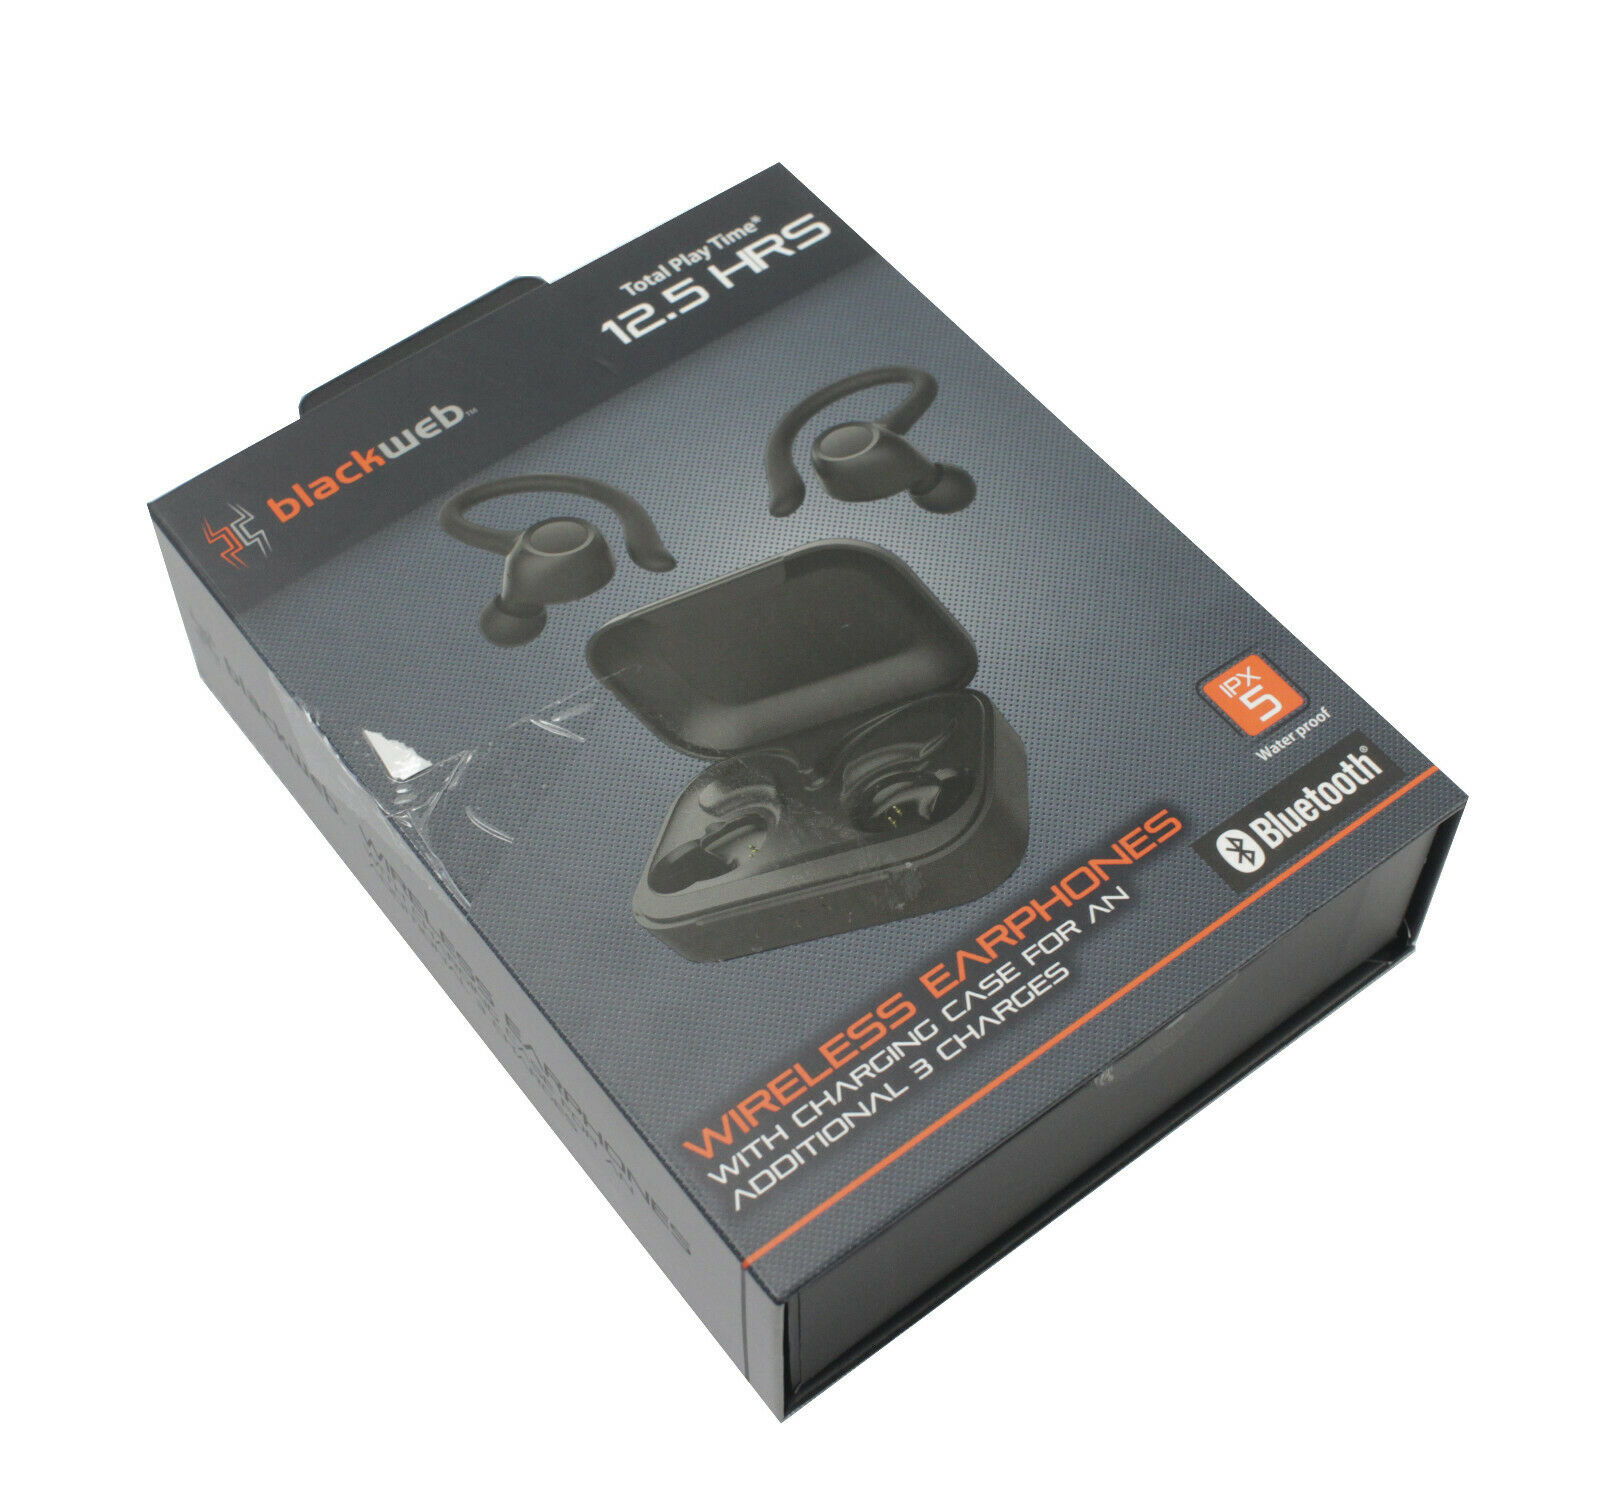 Blackweb True Wireless Bluetooth Earbuds Black With Charging Base Bwd19aah06 Rpc Global Technology Store Houston Tx Certified Refurbishers